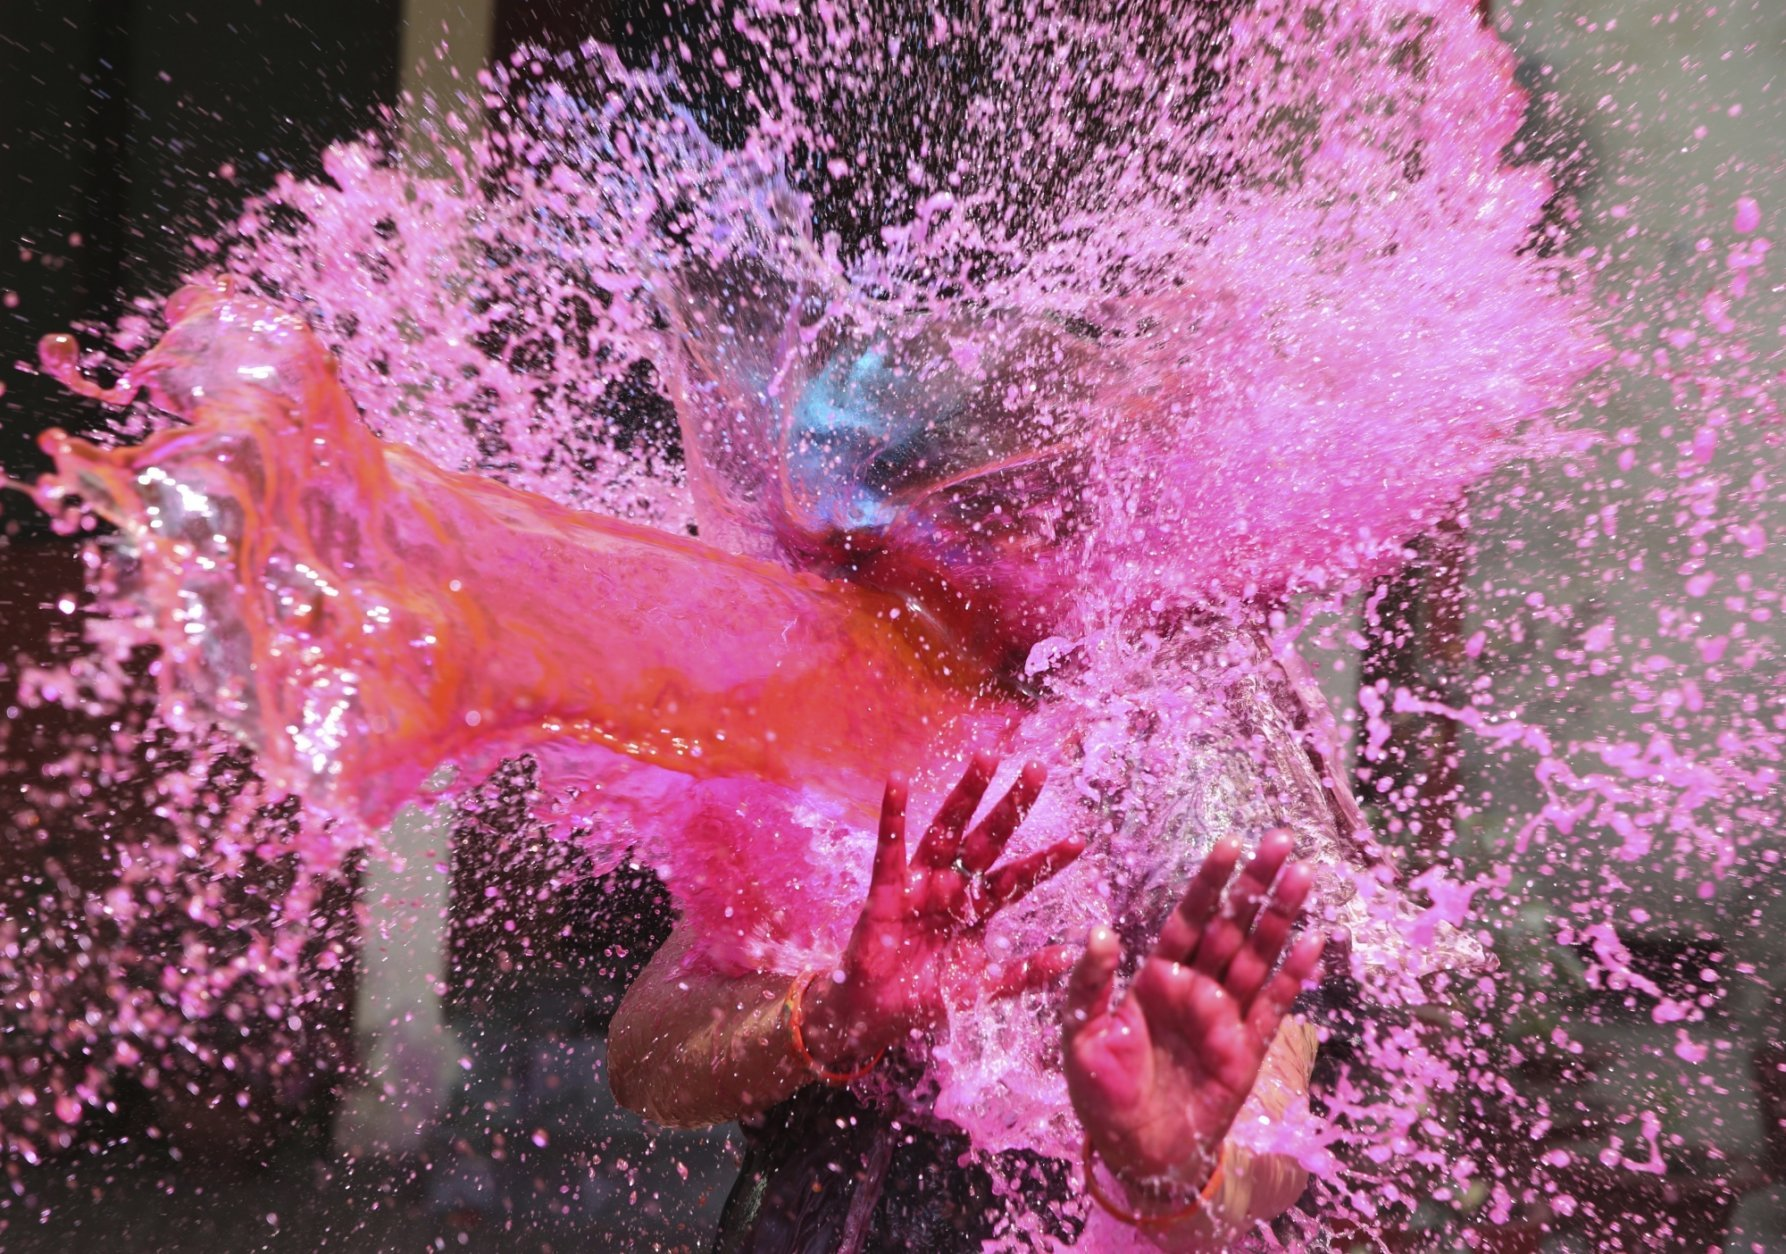 In this Thursday, March 21, 2019, file photo, a girl gestures with her hands as colored water is splashed on her during celebrations marking Holi festival in Allahabad, India. Holi, the festival of colors, also marks the advent of spring. (AP Photo/Rajesh Kumar Singh, File)